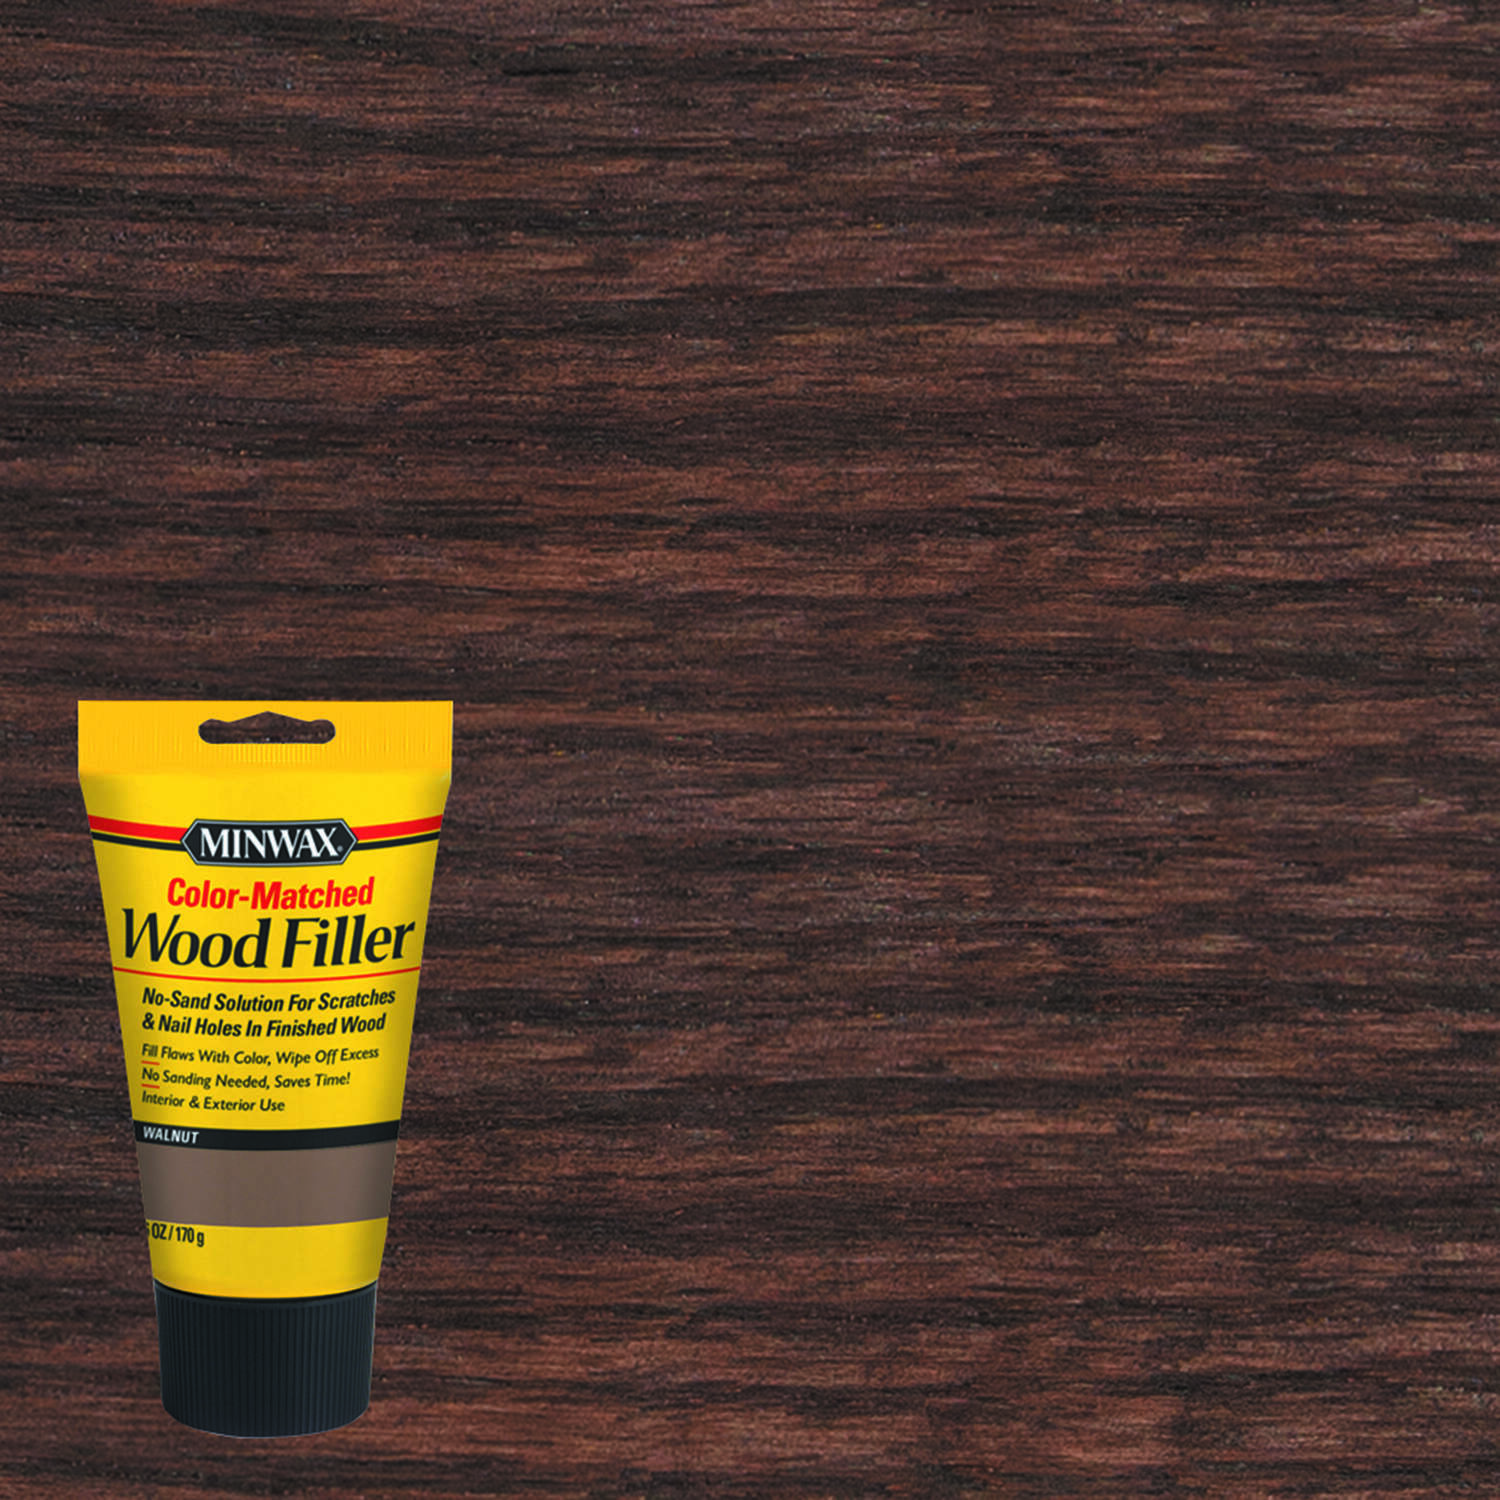 Minwax  Walnut  Wood Filler  6 oz.